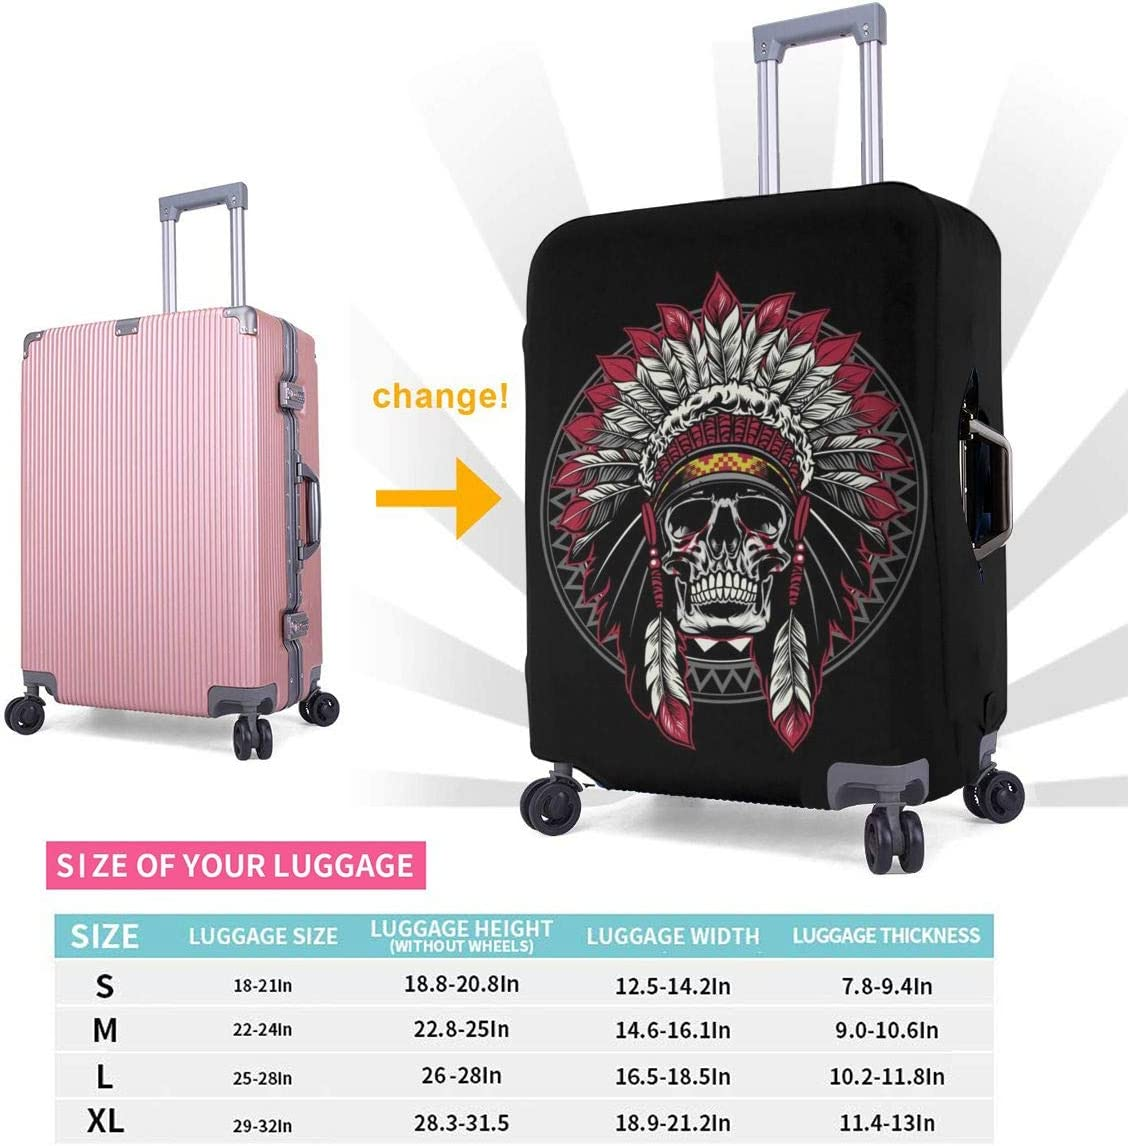 Native America Warrior Skull Headdress XL 18-32 Inch Luggage Cover Protector Bag Suitcase Cover Protectors Travel Luggage Sleeve Protector S M L XL